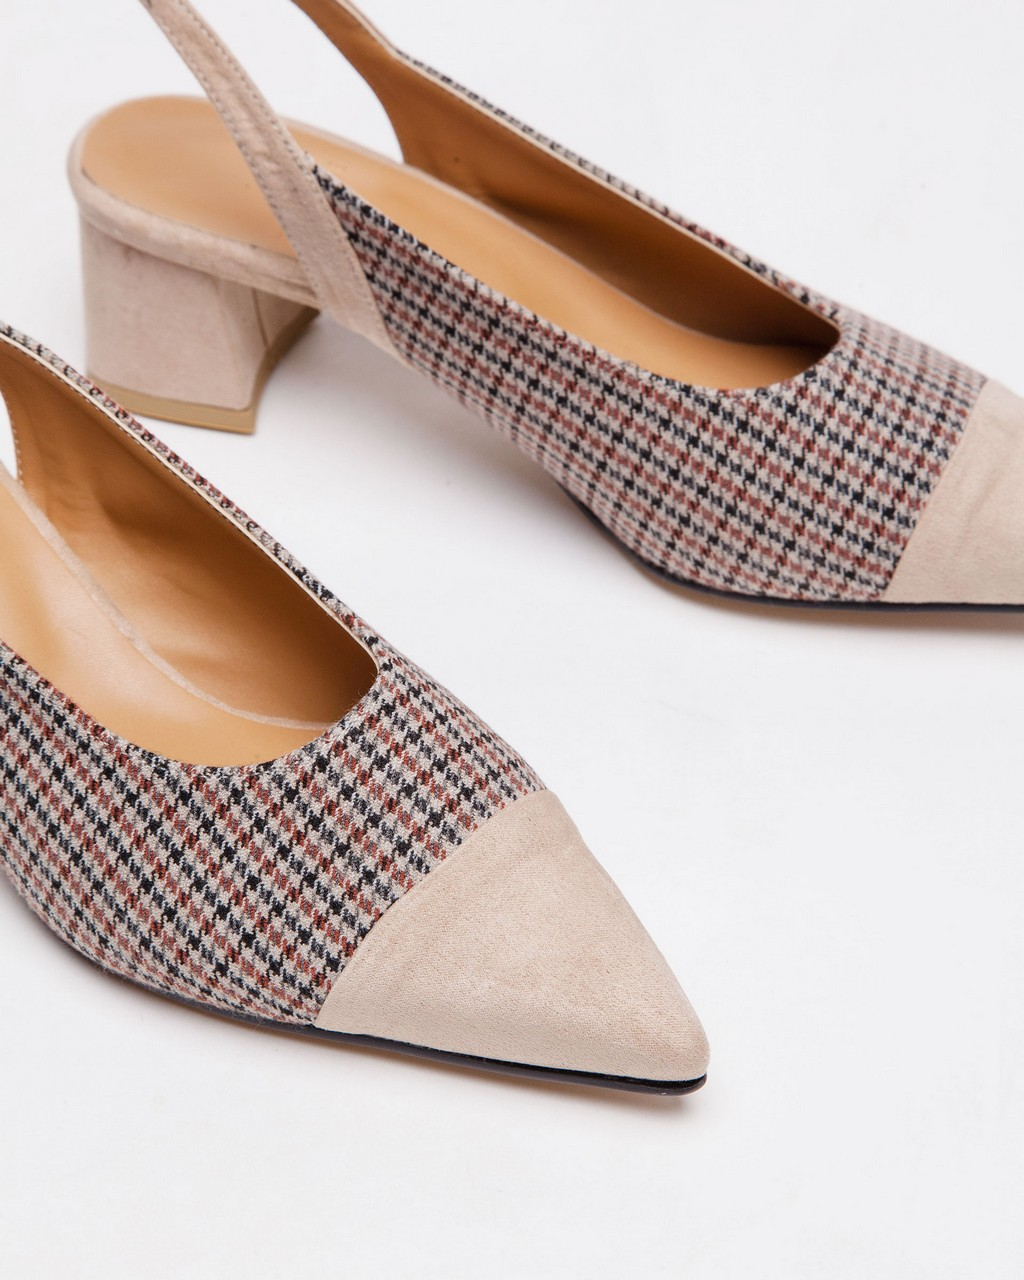 Tagtraume Barry-02 - Beige Check(베이지 체크)